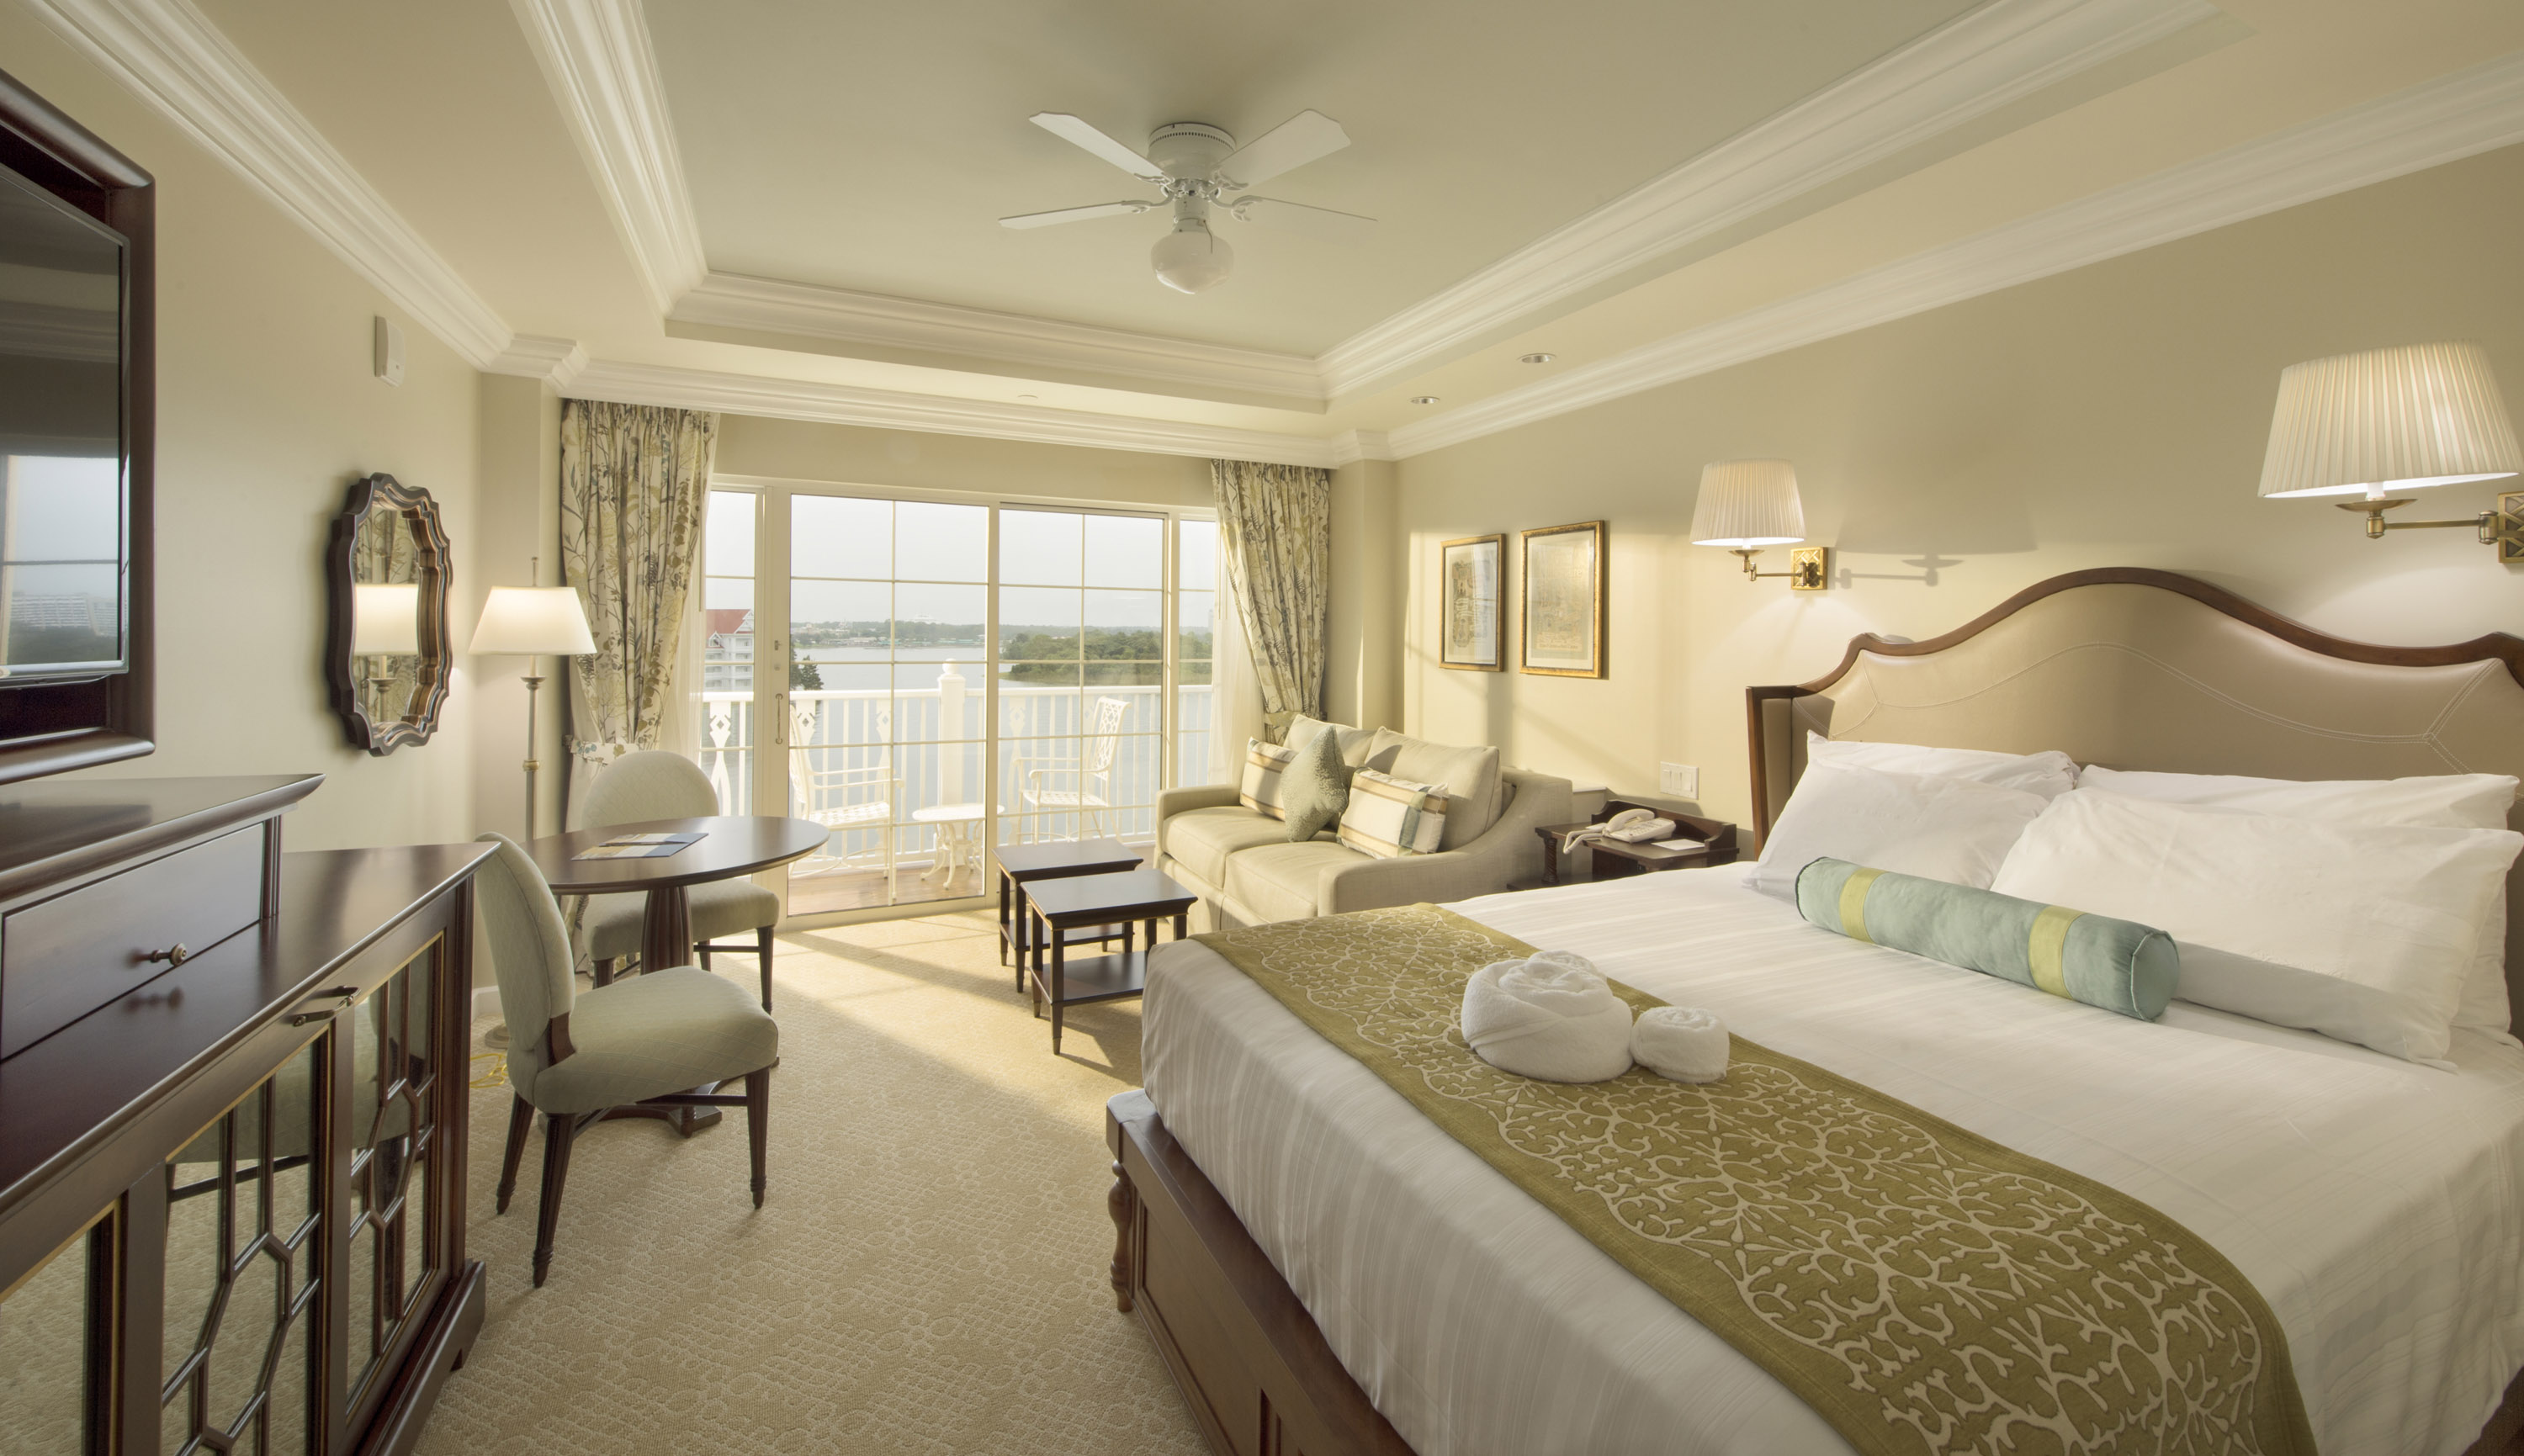 Photos The Villas At Disney S Grand Floridian Resort Are